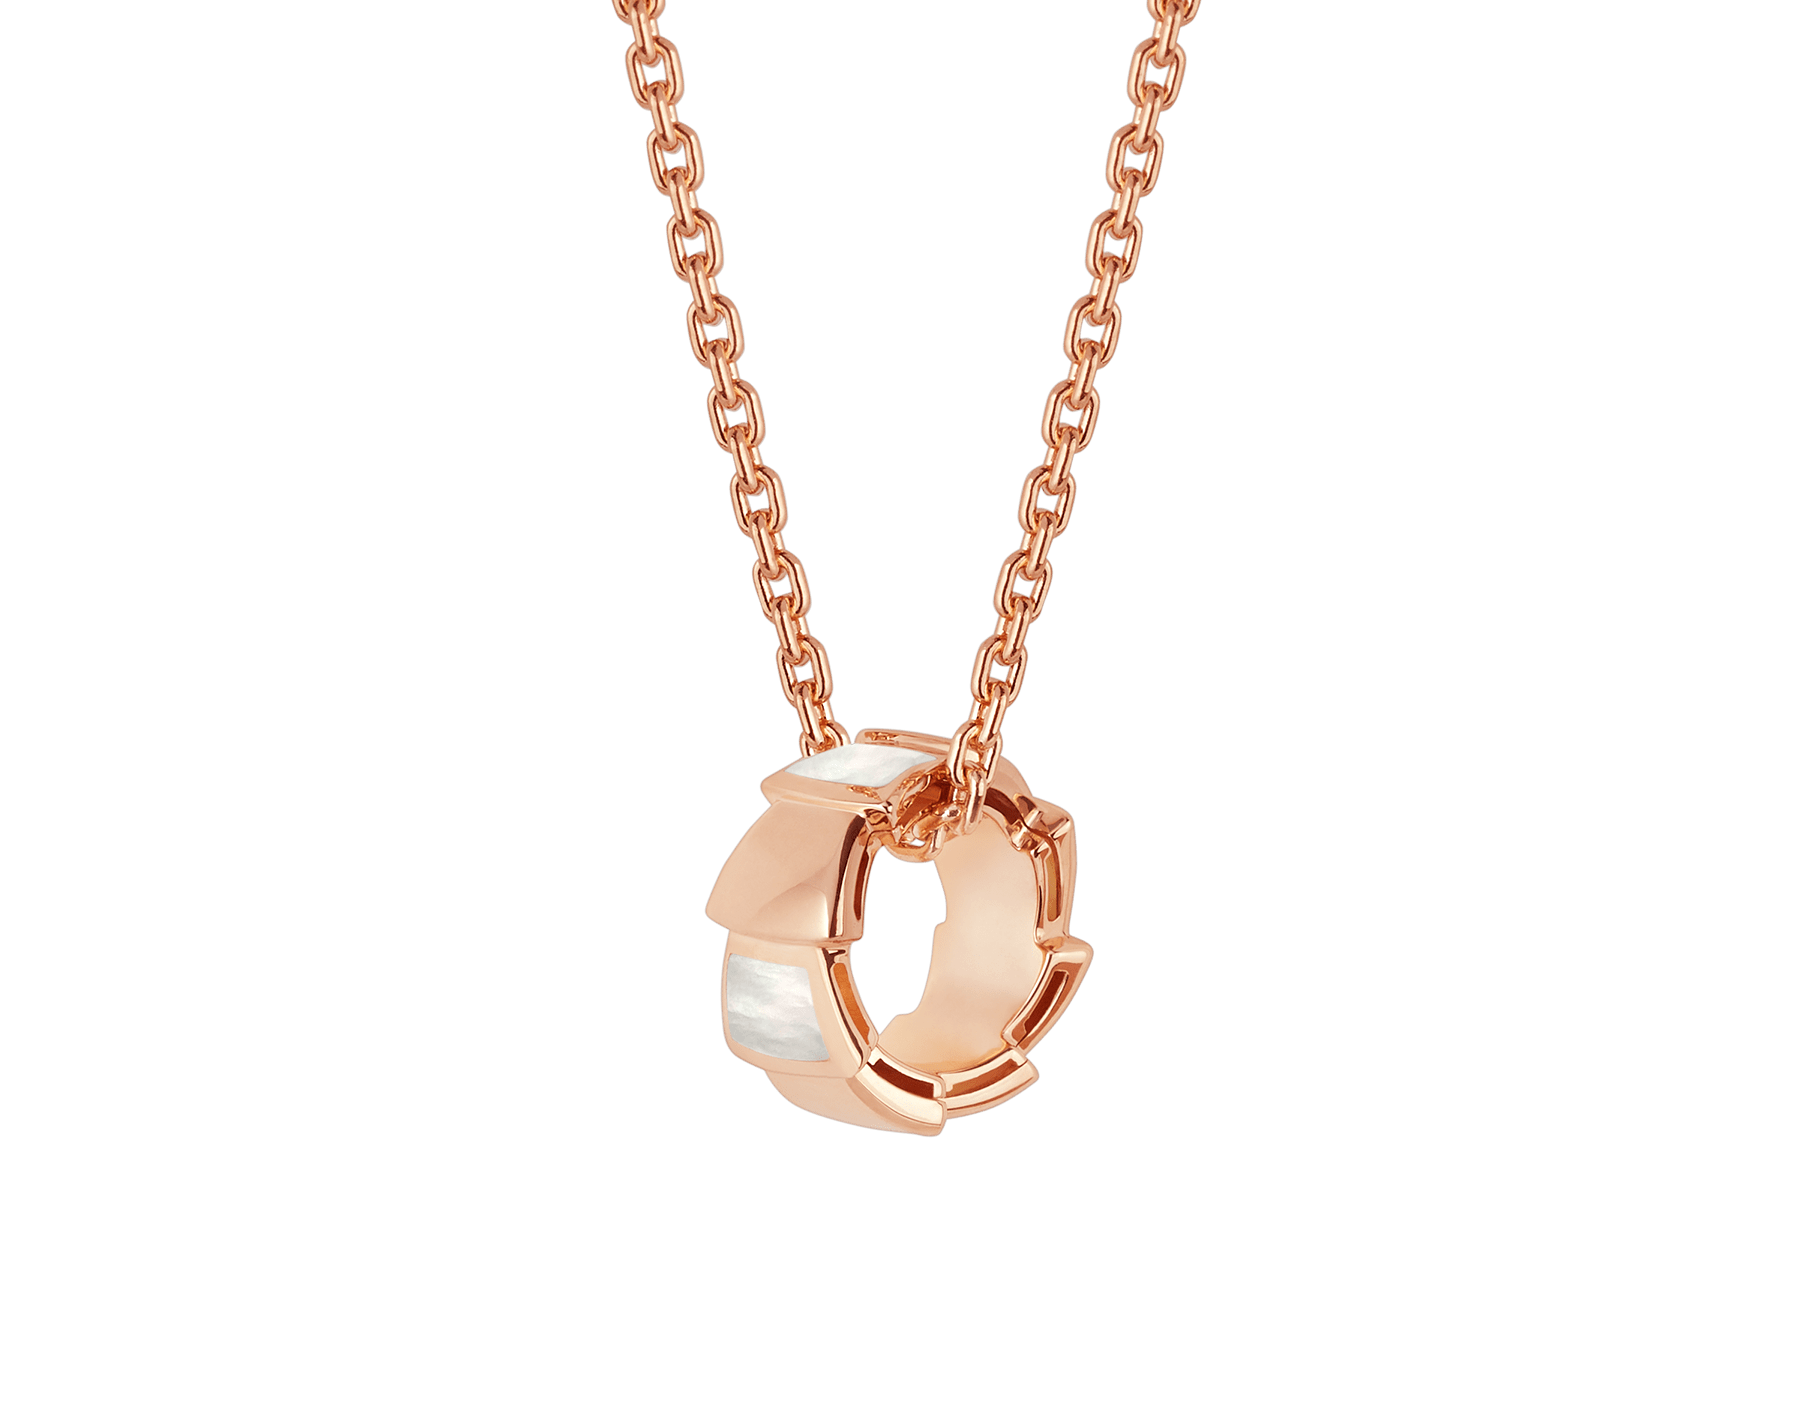 Serpenti 18 kt rose gold necklace with pendant set with mother-of-pearl elements 355795 image 1